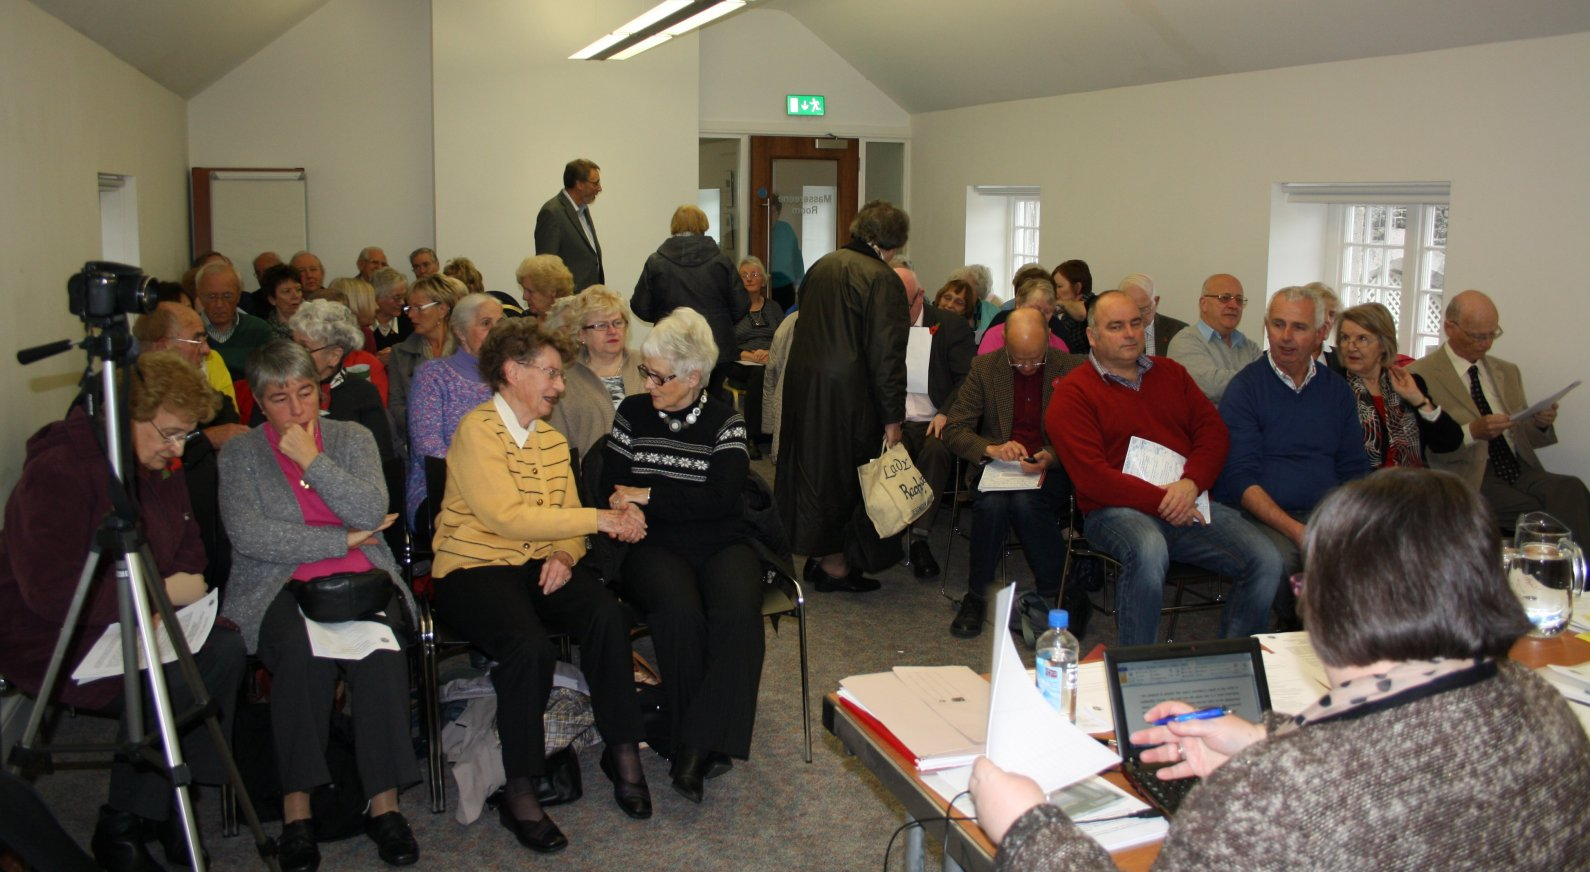 The delegates gathering for the meeting